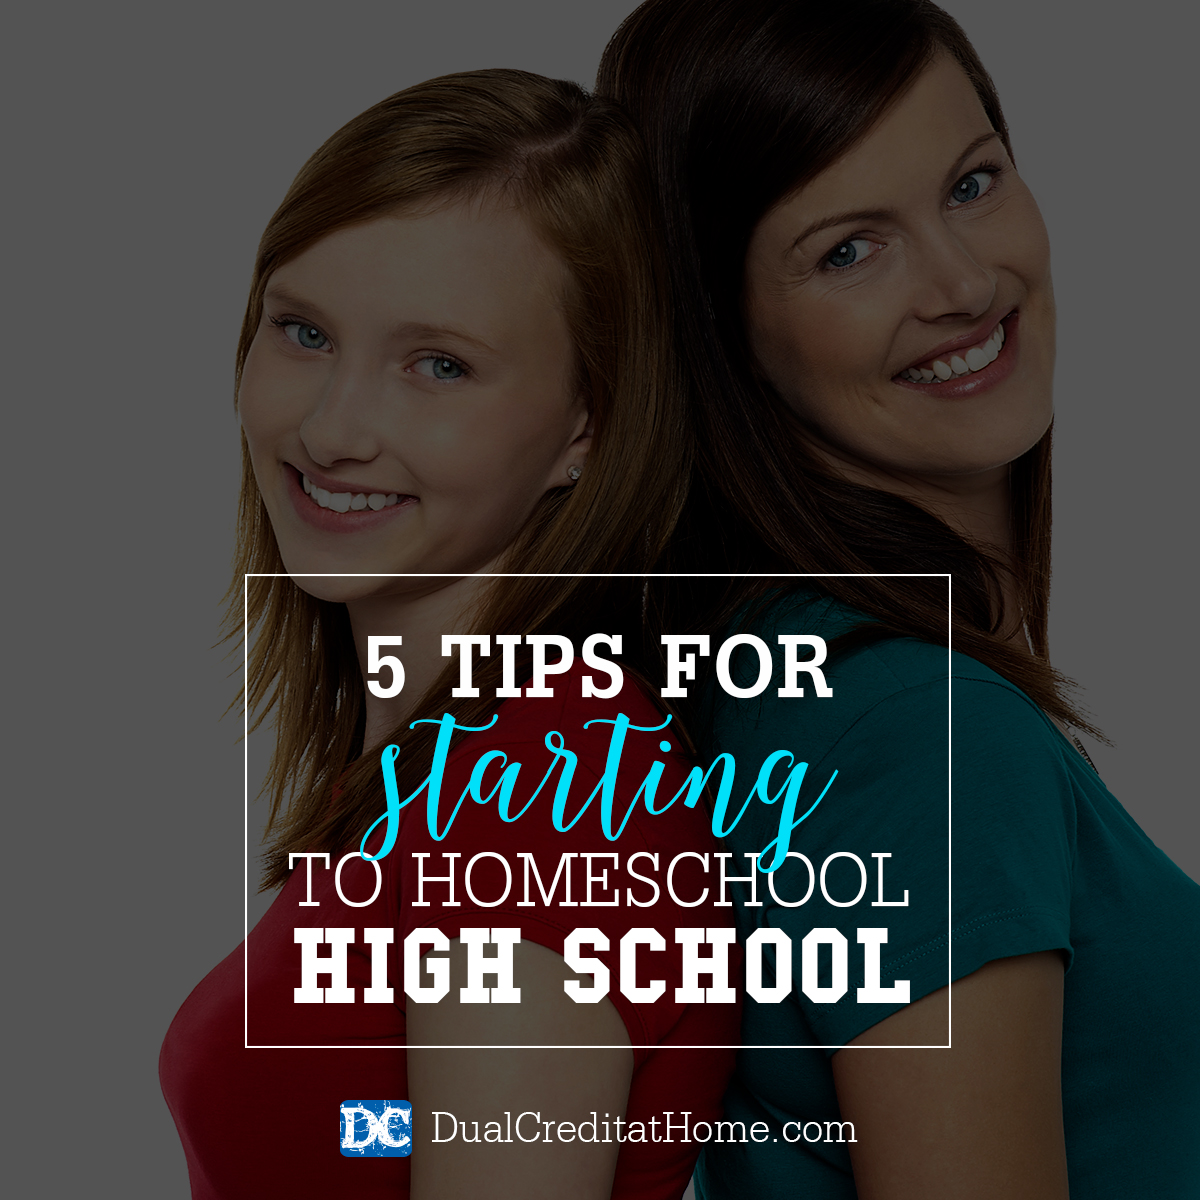 5 Tips for Starting to Homeschool in High School